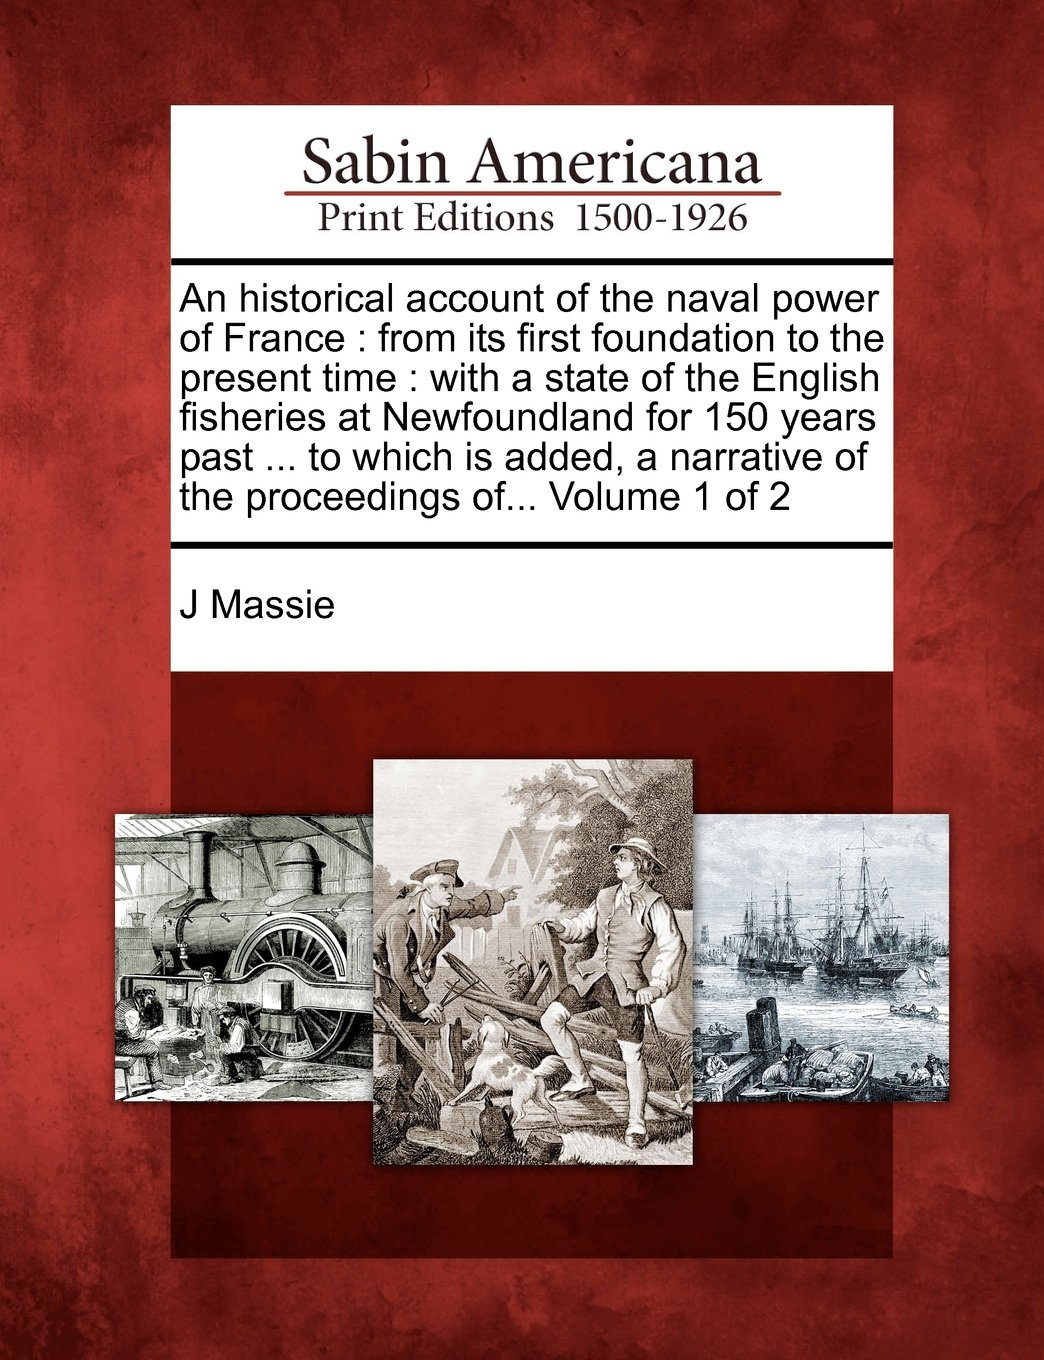 An historical account of the naval power of France: from its first foundation to the present time : with a state of the English fisheries at ... of the proceedings of... Volume 1 of 2 PDF